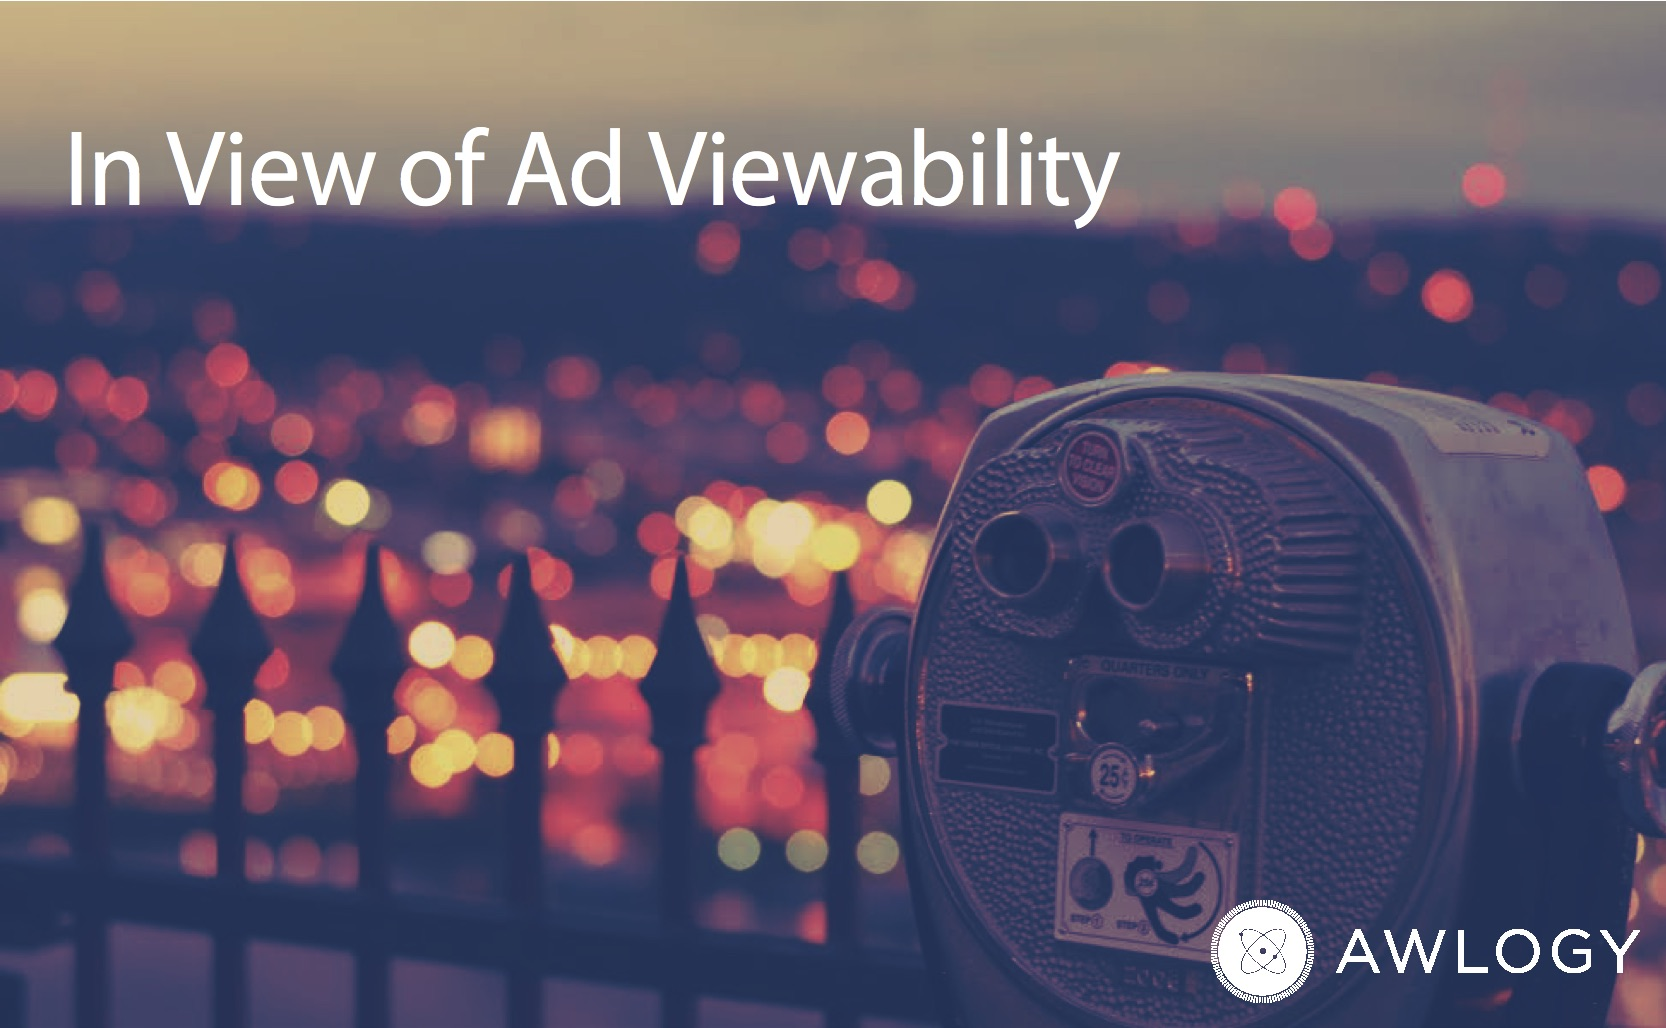 In View of Ad Viewability